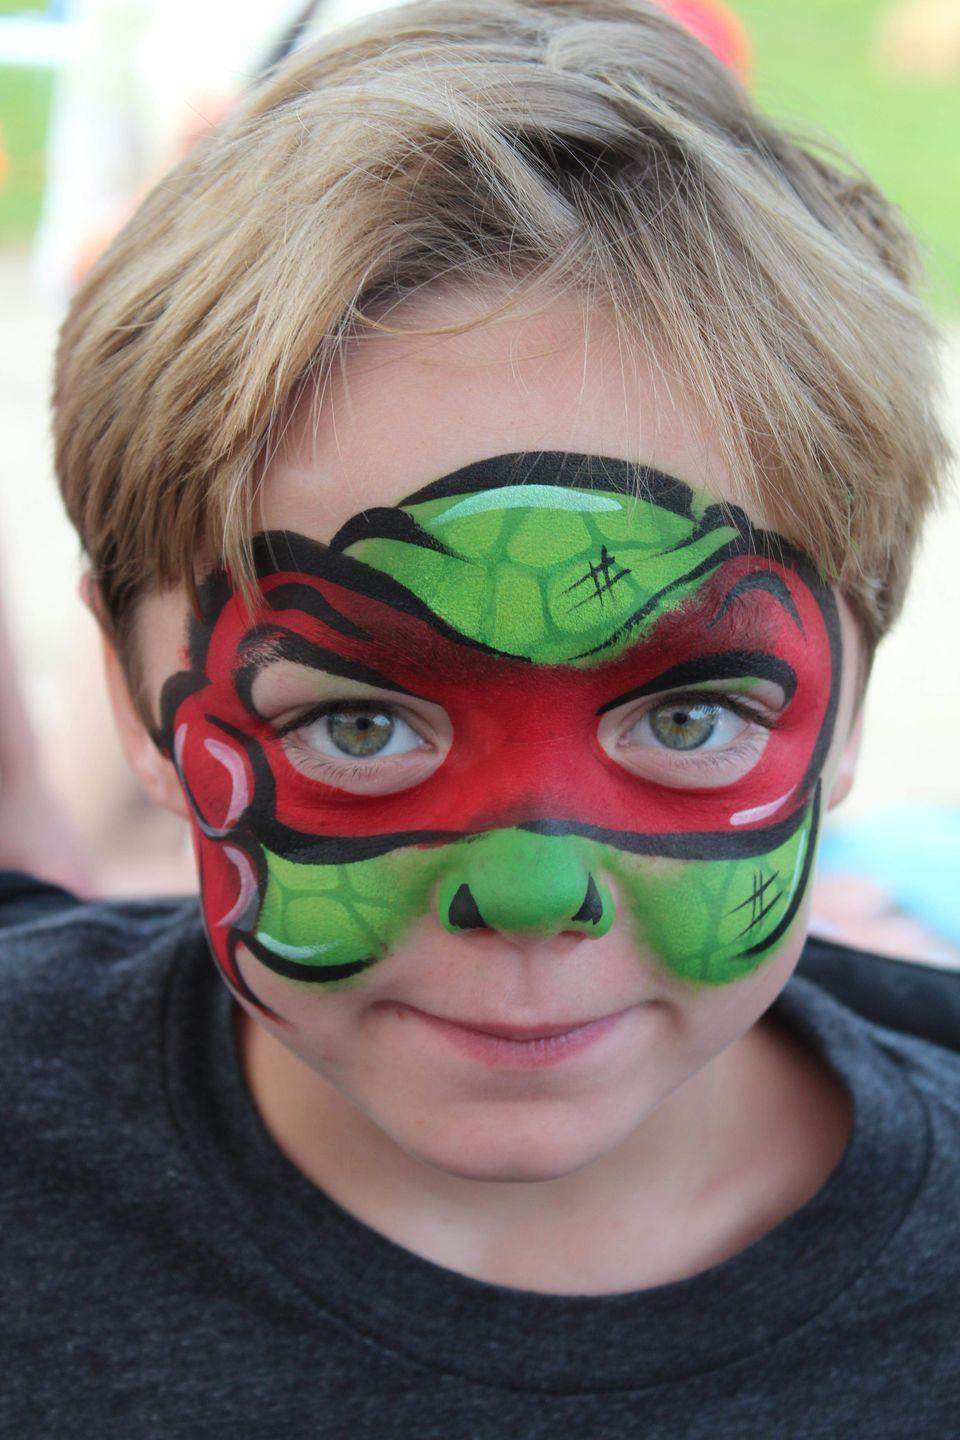 "<p>Switch up the color of the mask to match his favorite Ninja Turtle — and then add some green and black paint to finish off the look, no nun chucks required.</p><p><em><a href=""http://www.fancifulfaces.com/"" rel=""nofollow noopener"" target=""_blank"" data-ylk=""slk:See more at Fanciful Faces »"" class=""link rapid-noclick-resp"">See more at Fanciful Faces »</a></em></p>"